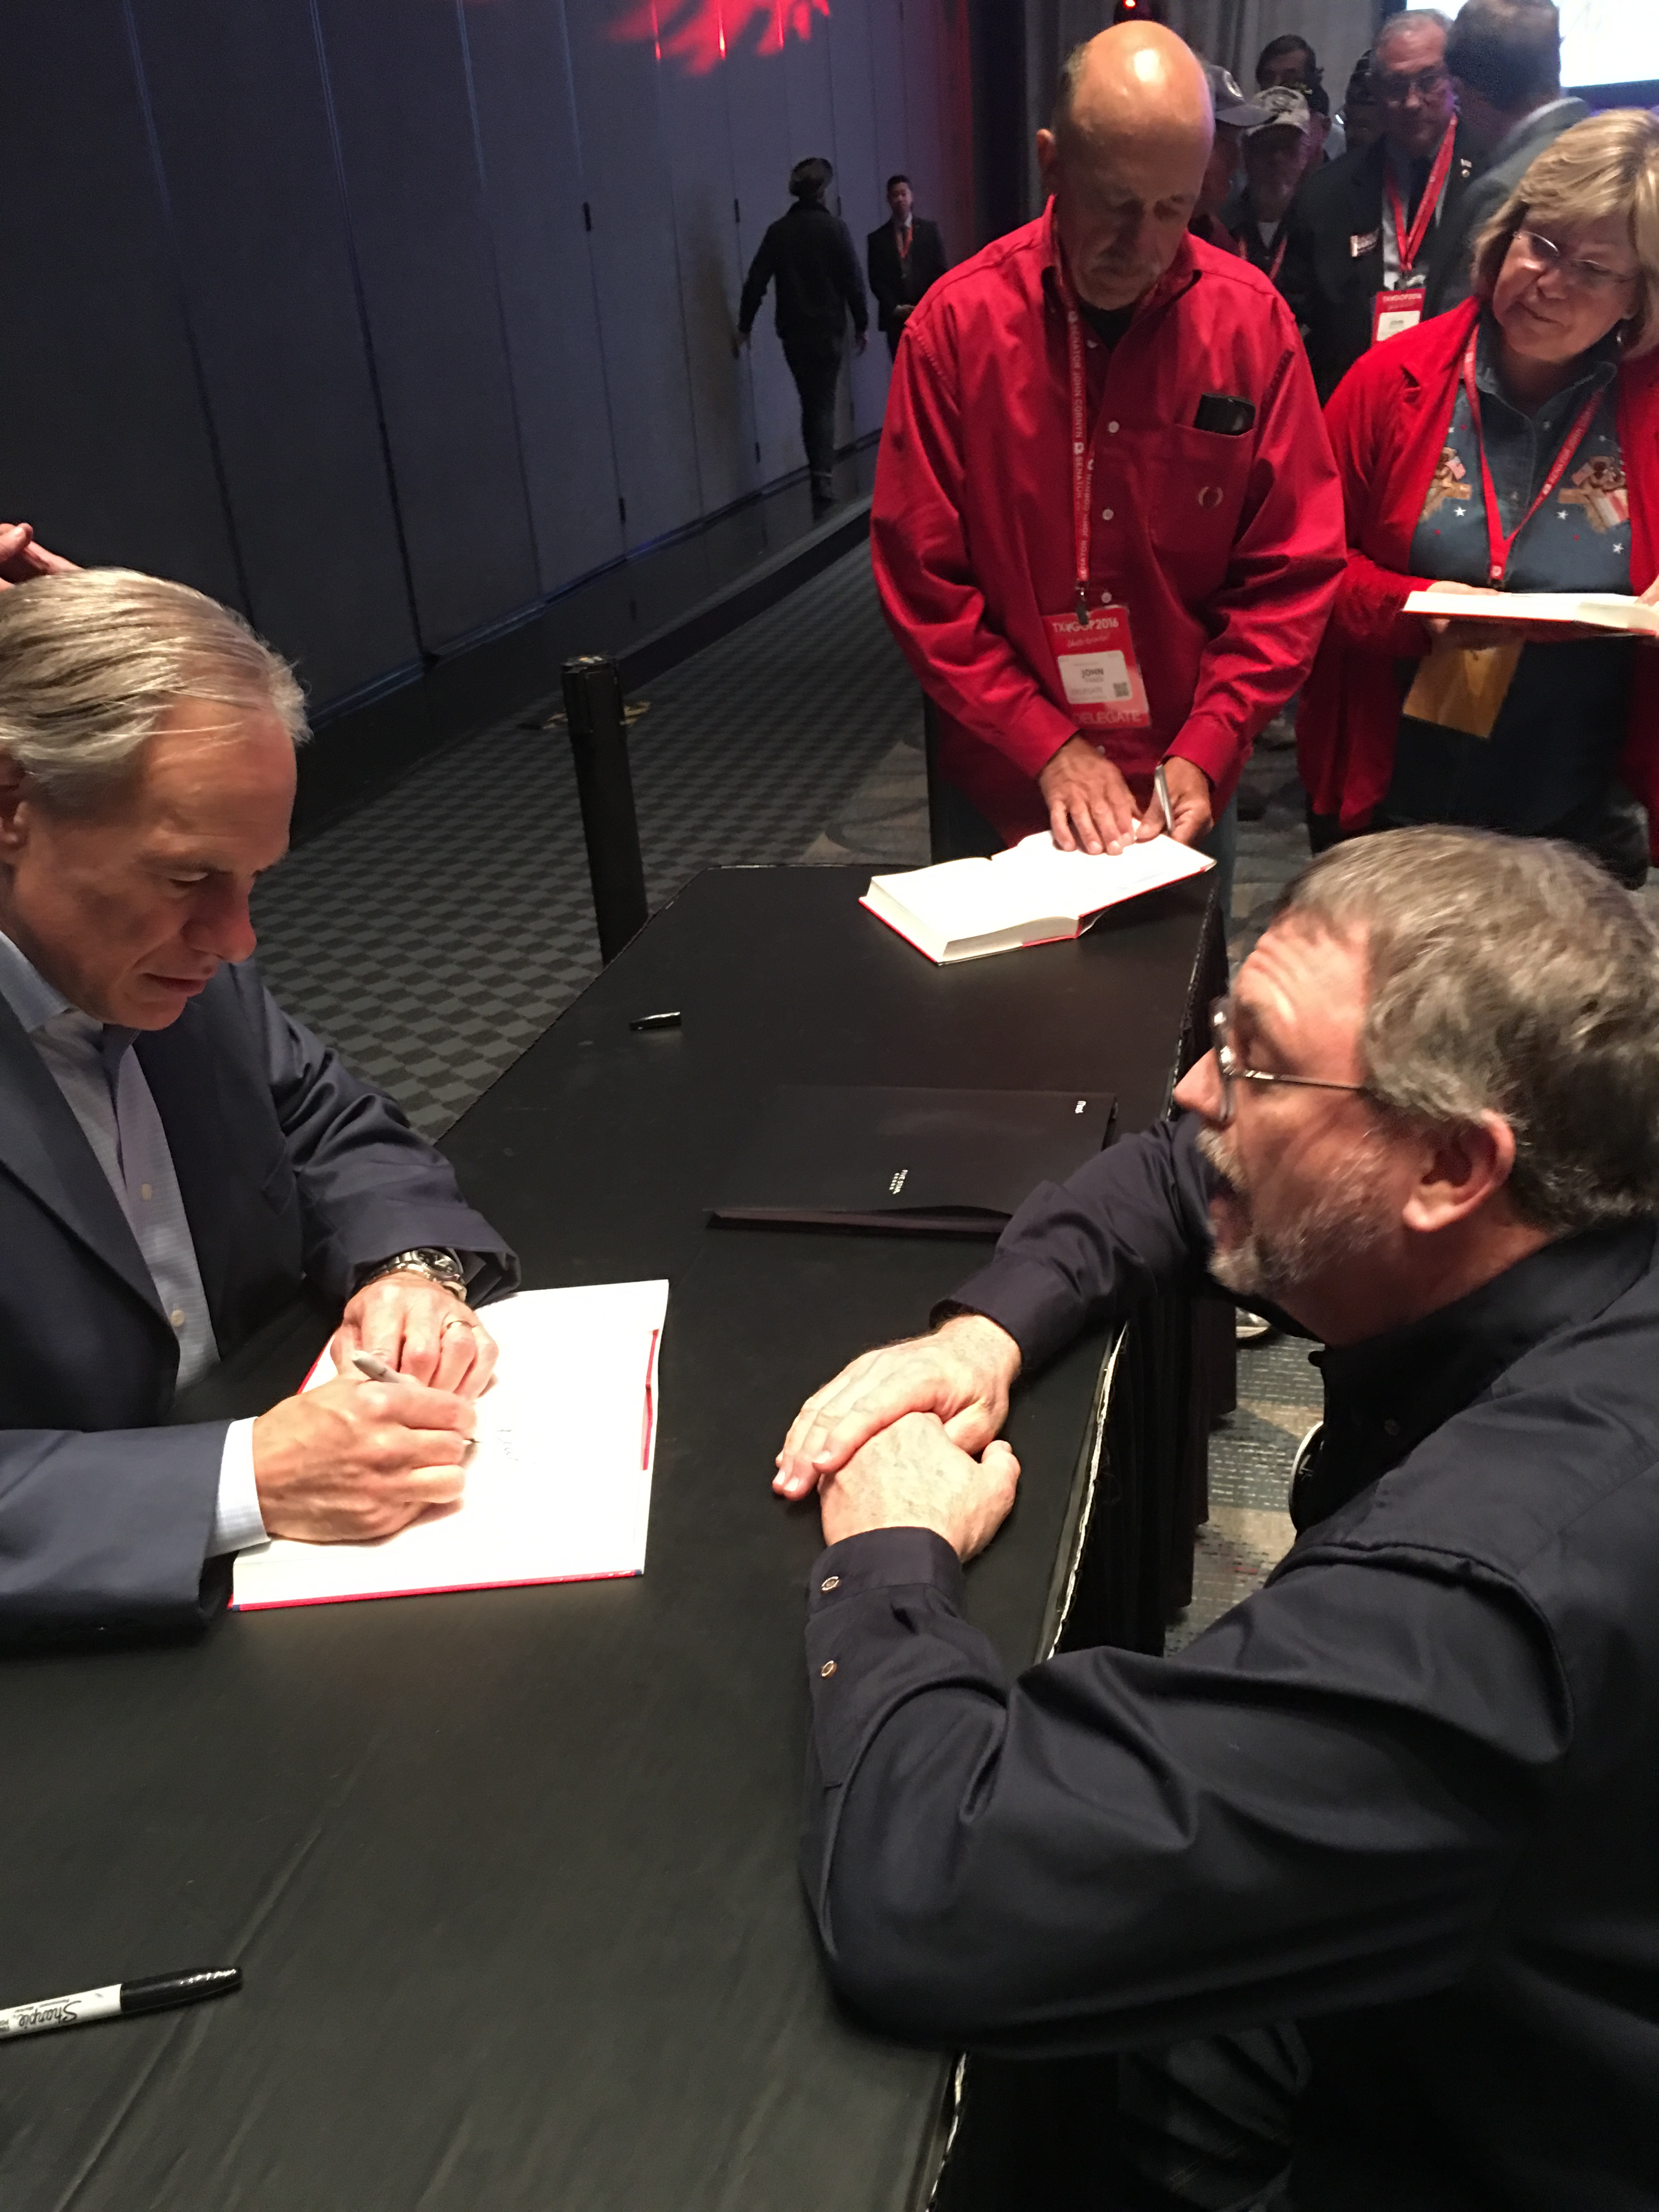 Governor_Abbott_Signs_Paul_Hodson_Copy_of_Broken_But_Unbowed.JPG